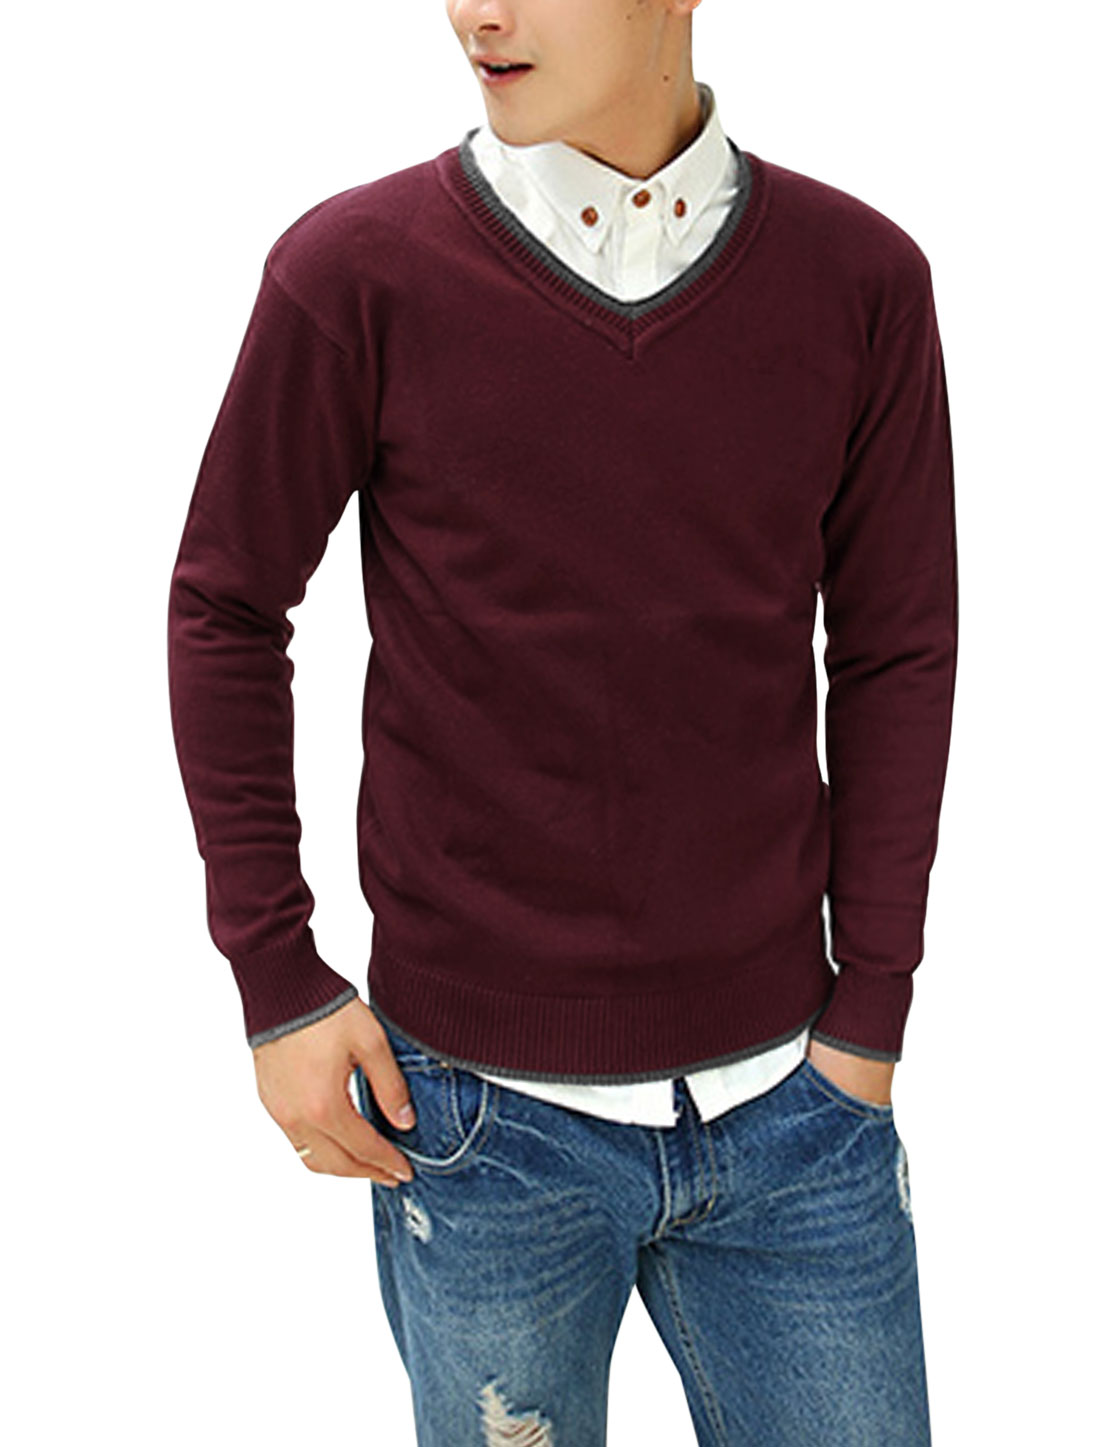 Men Ribbed Cuffs Contrast Collar Long Sleeves Casual Cozy Fit Sweater Burgundy M